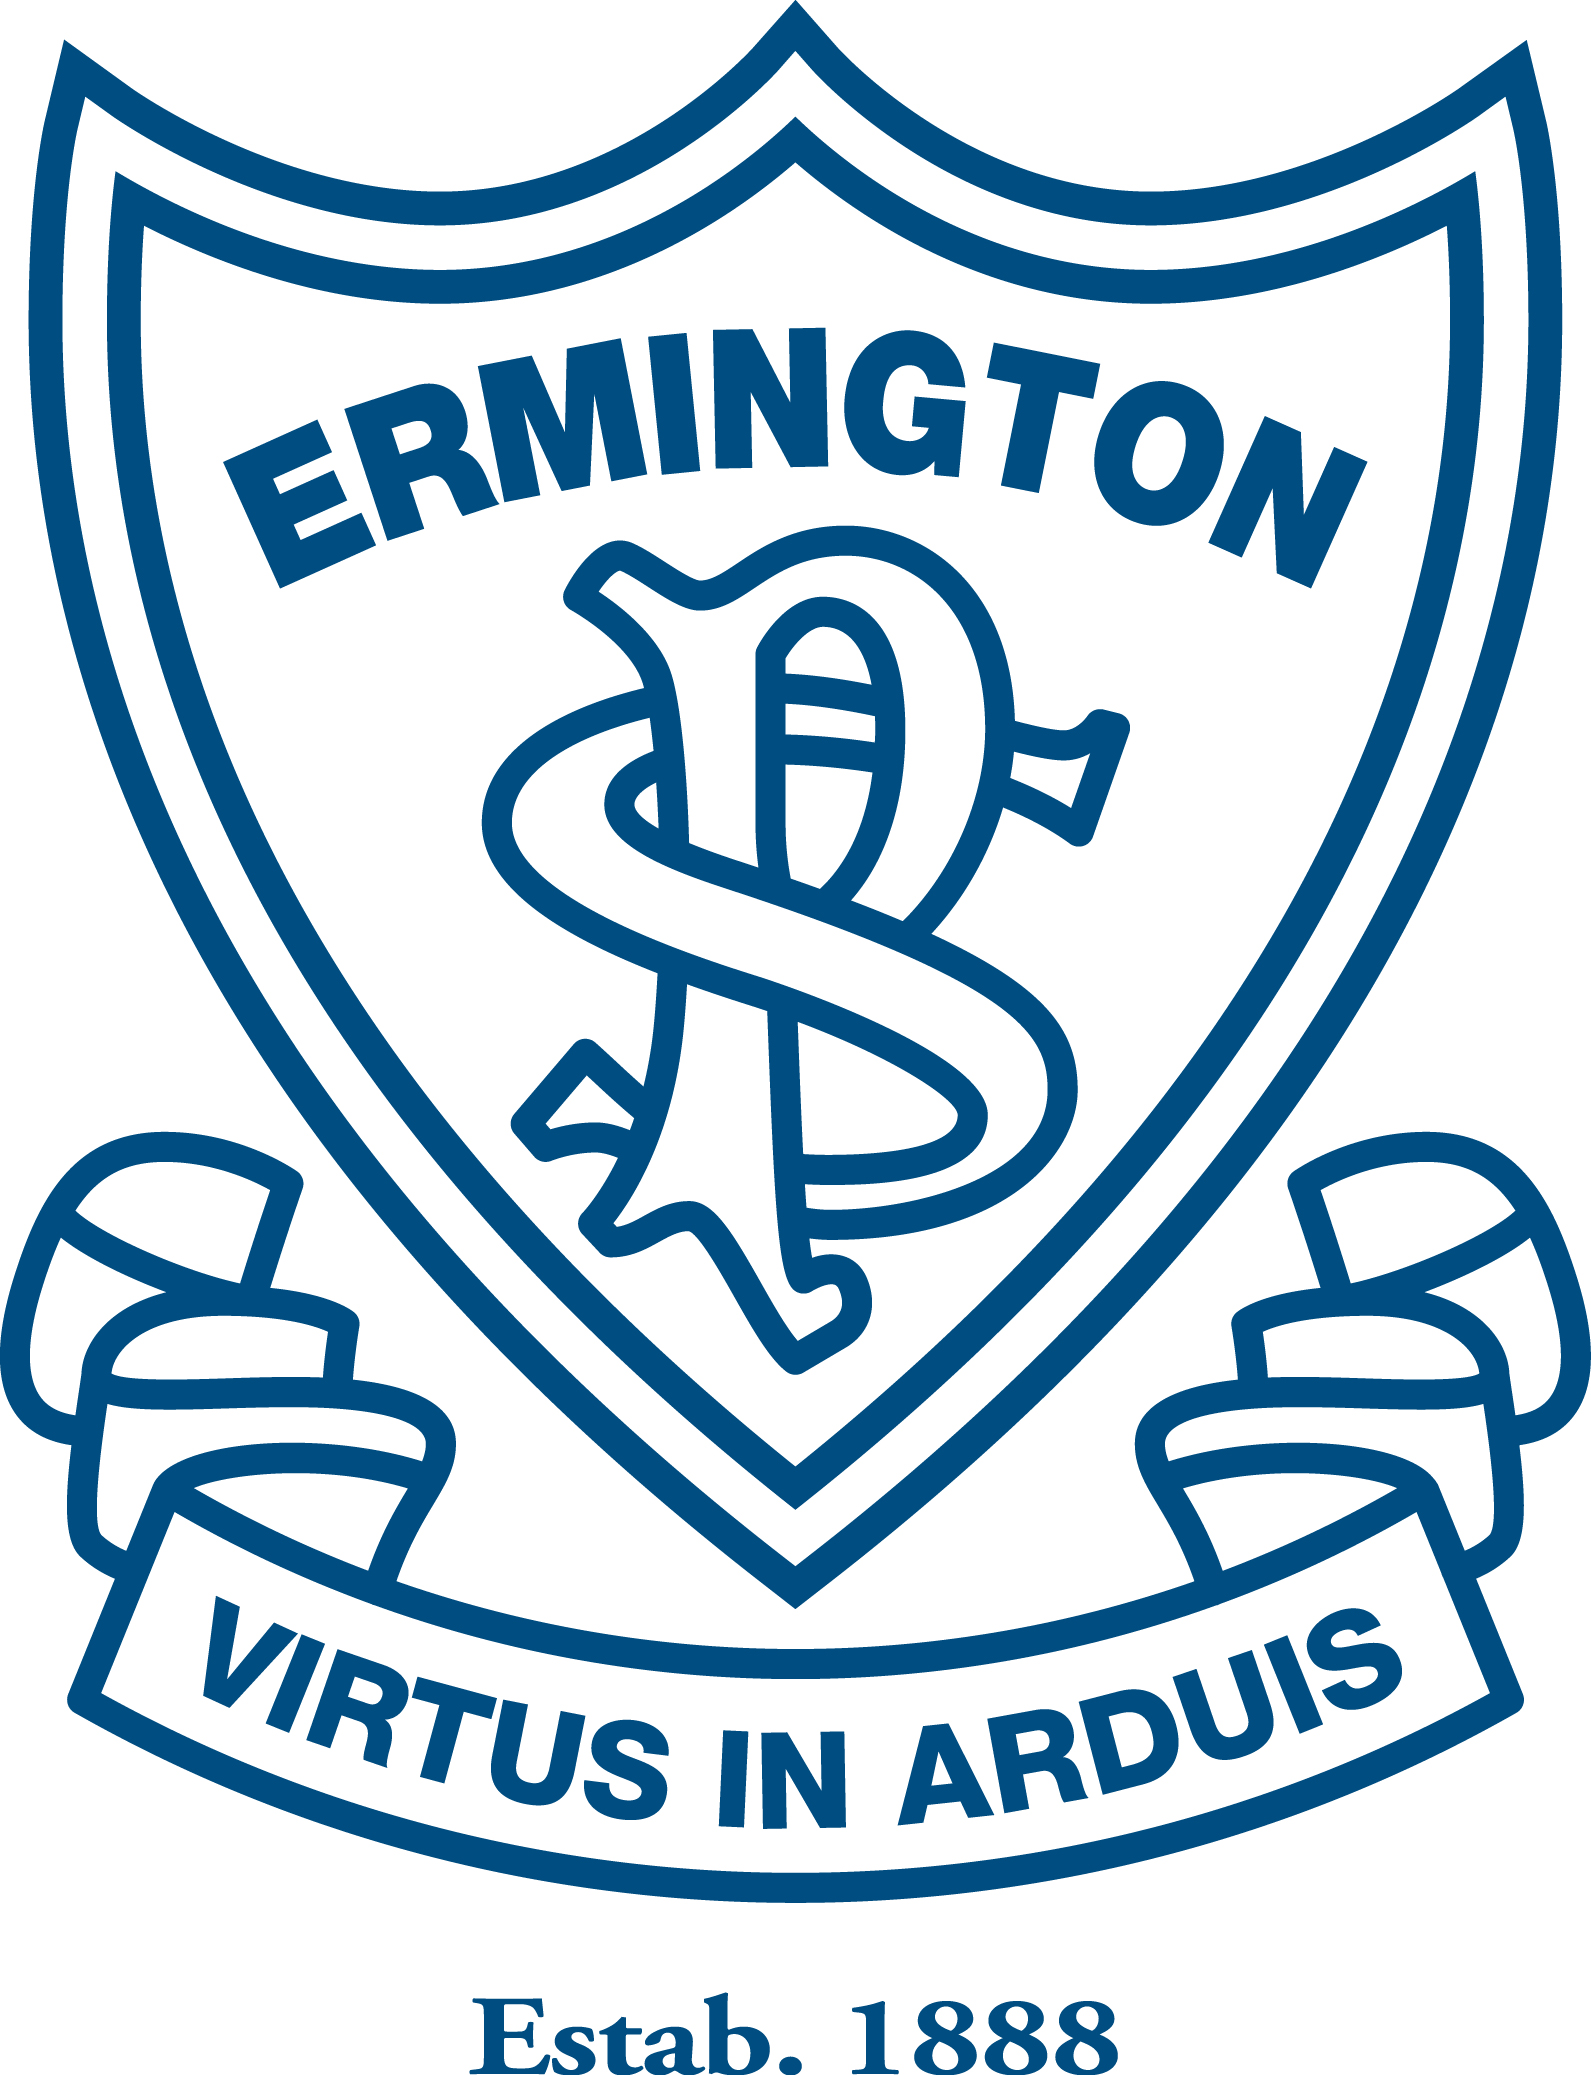 Ermington Public School logo